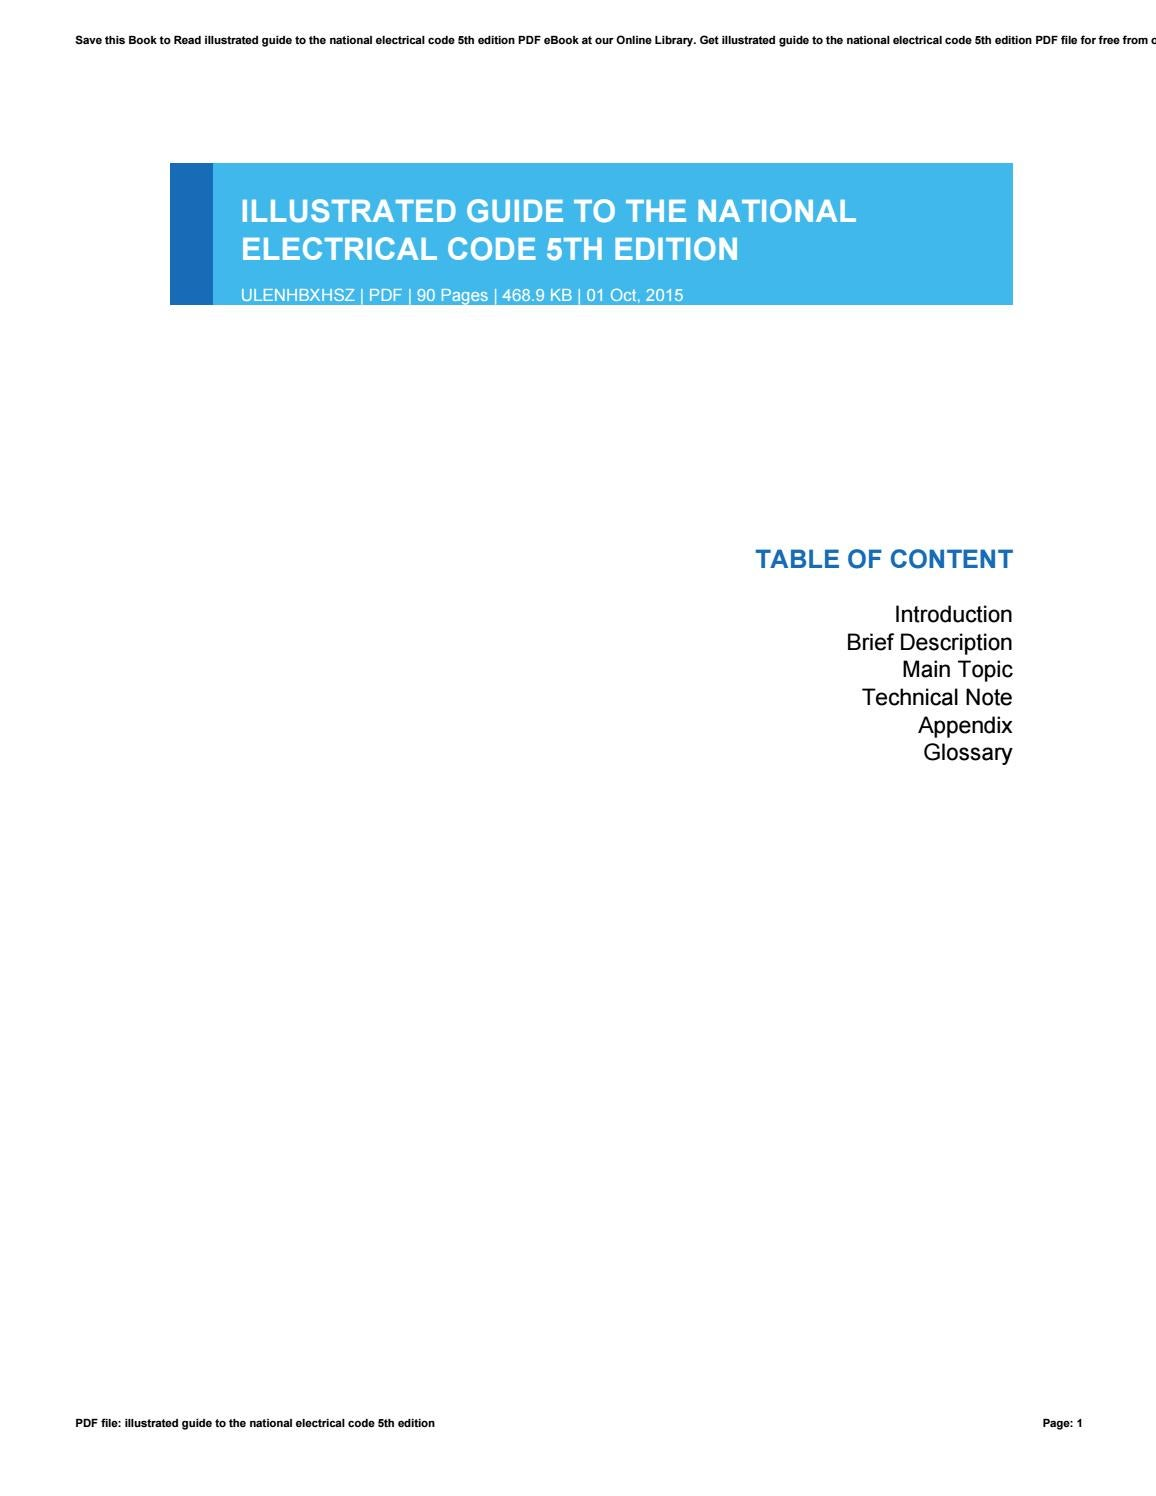 Illustrated guide to the national electrical code 5th edition by  ClarenceDunn3399 - issuu